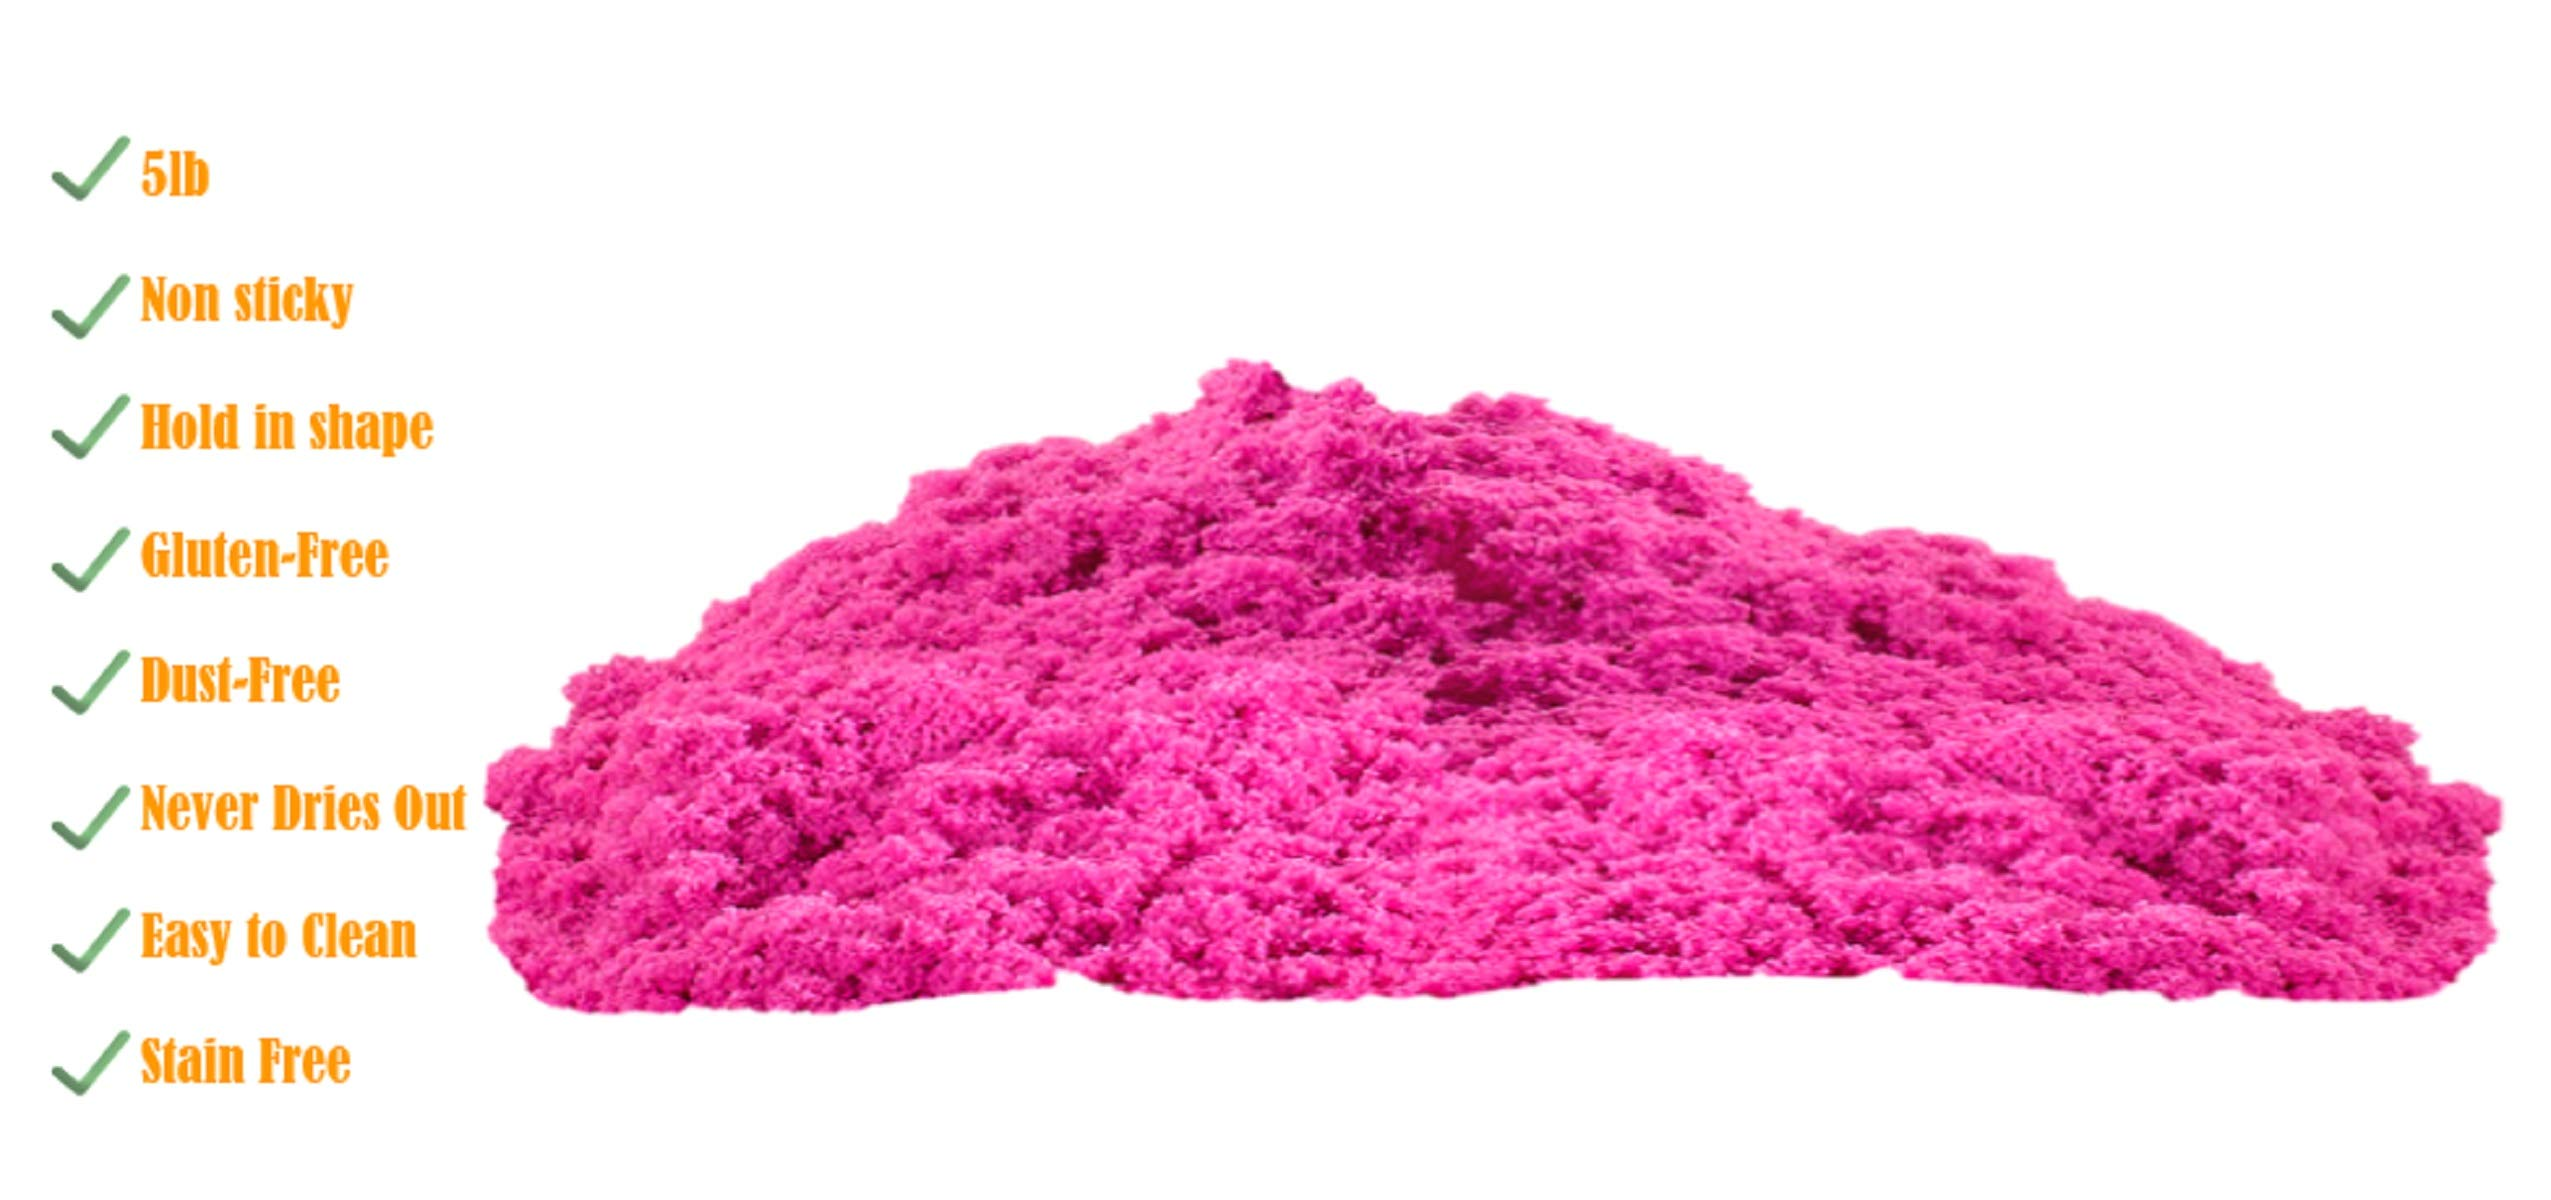 walla Play Sand (5 lbs.) | Pink Play Sand for Kids | Great Kinetic Sensory Toy for Creating Fun, Moldable Sand Art & Work On Fine Motor Skills | Bring The Beach to Your Home with Mess-Free Magic Sand by walla (Image #5)